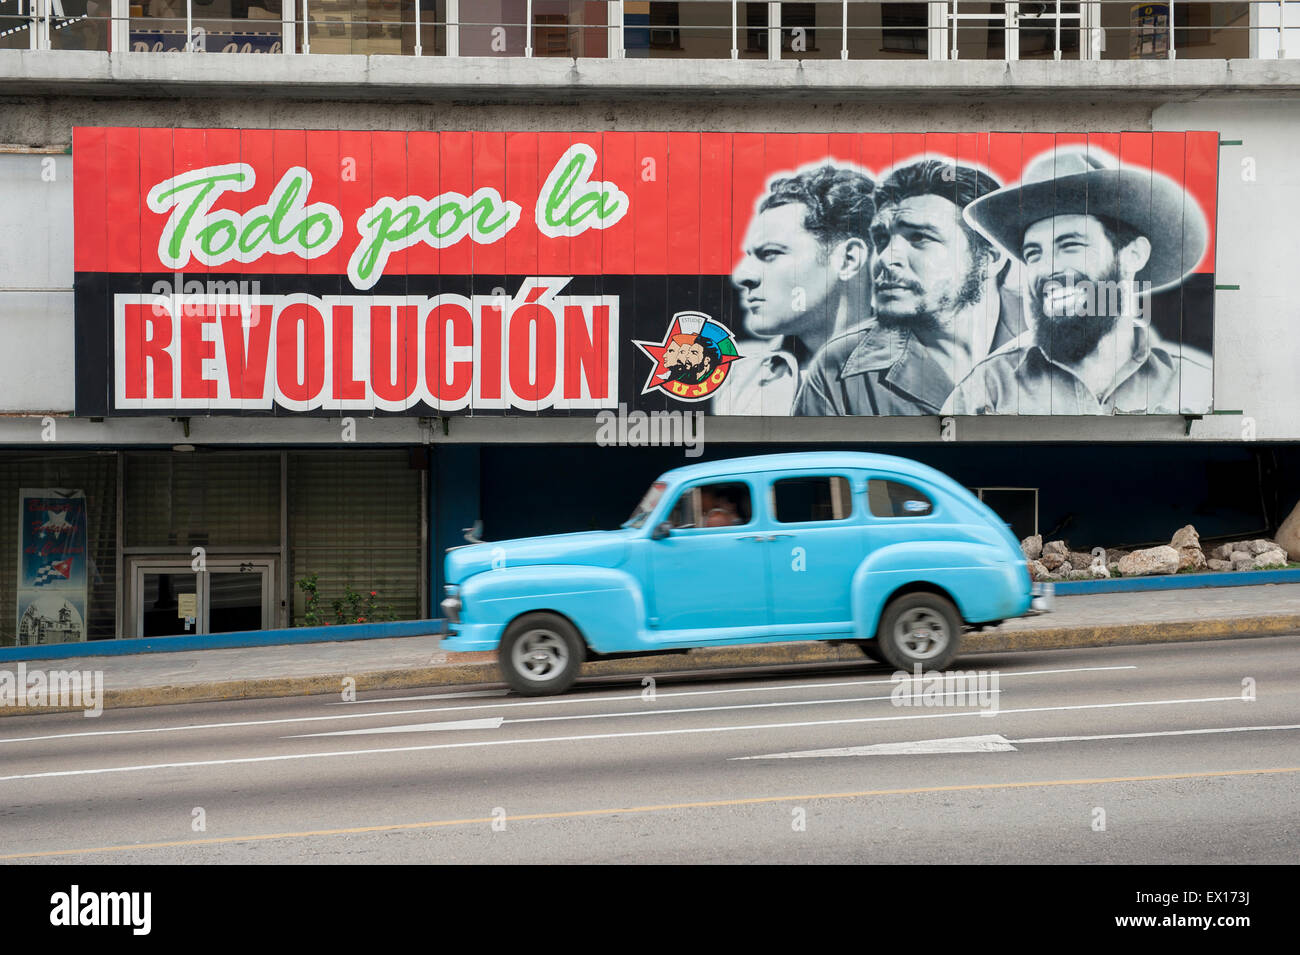 HAVANA, CUBA - JUNE, 2011: Vintage American taxi car passes below billboard promoting Communist propaganda in the - Stock Image